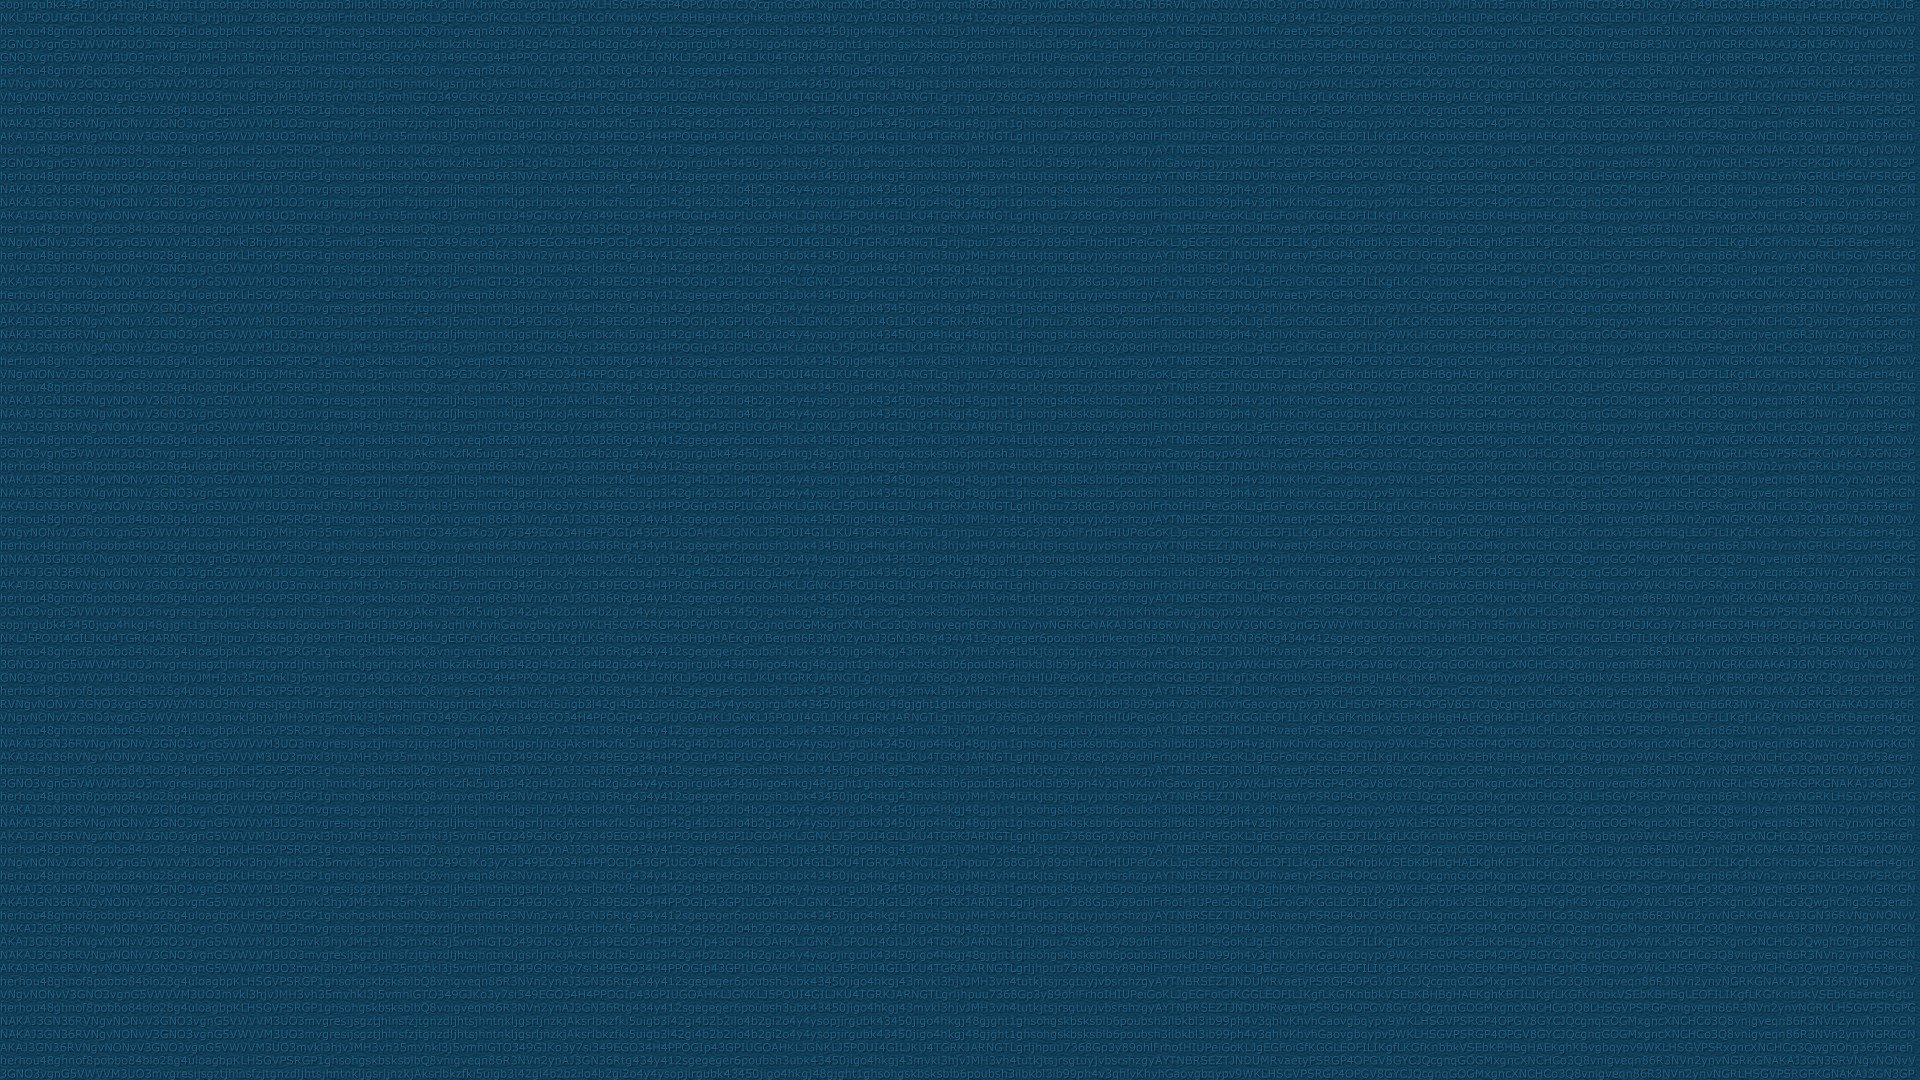 Html Background Codes For Web